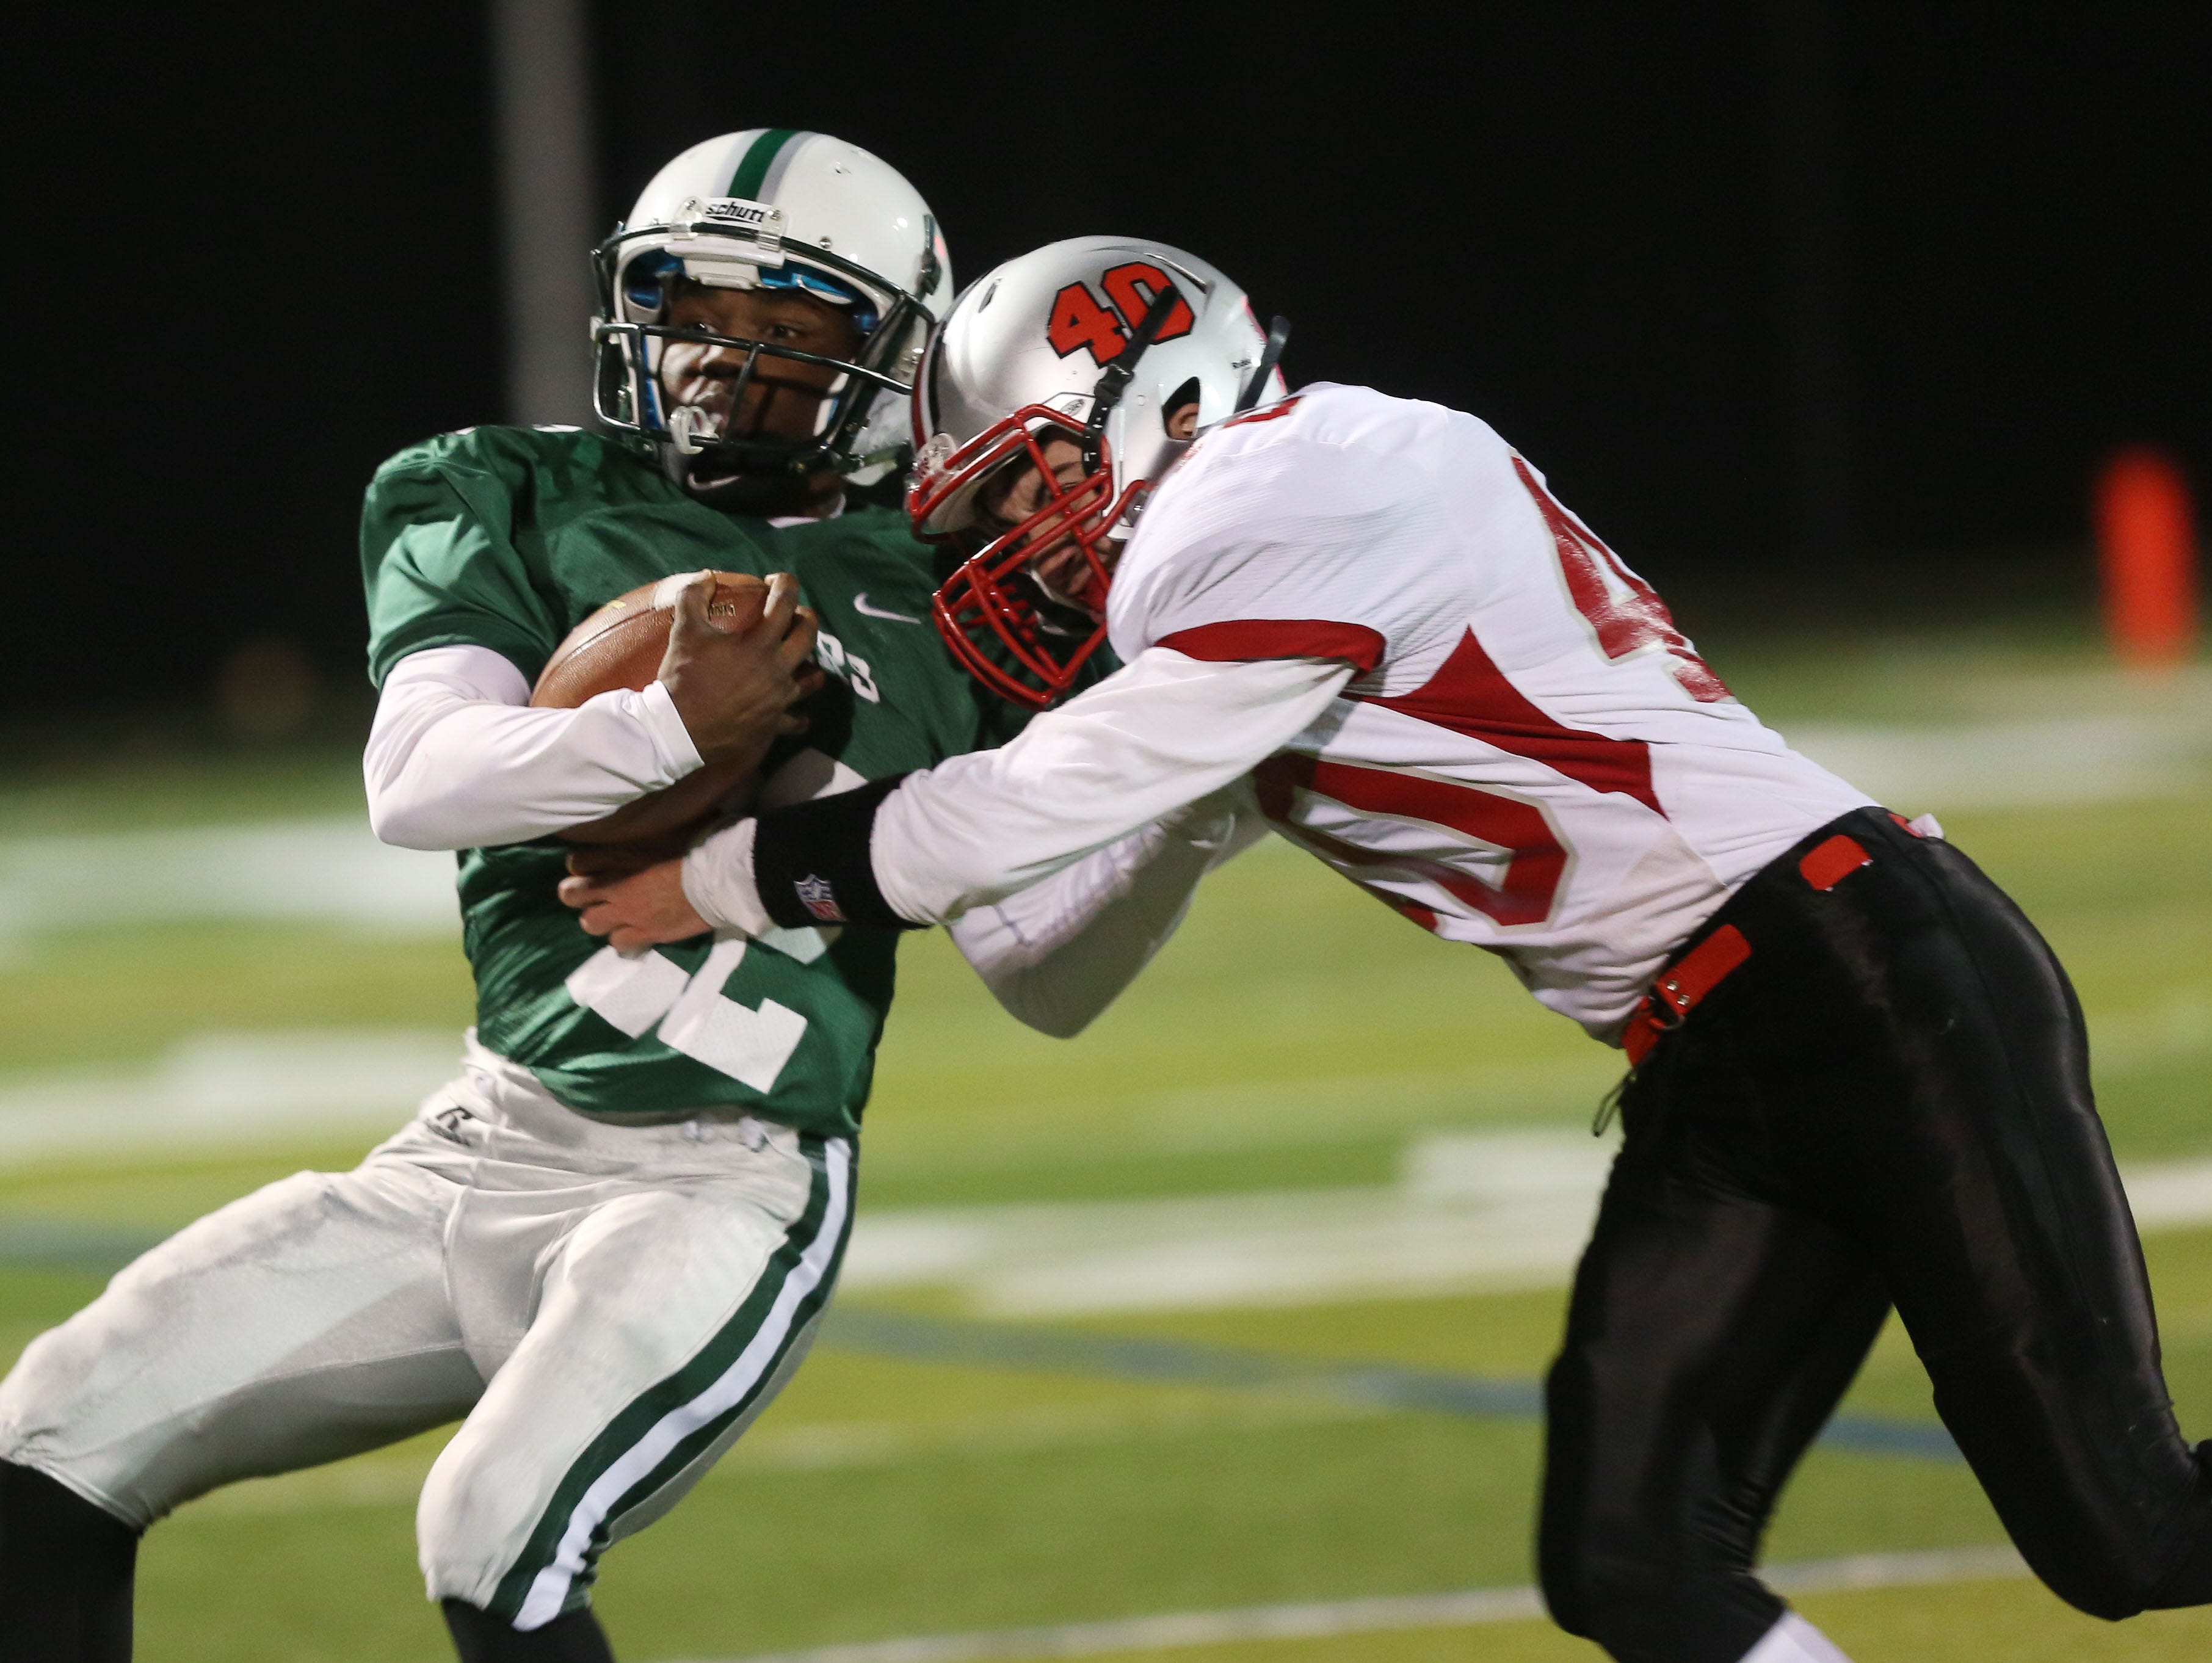 Brewster's Henry Terry tries to get away from Somers Andrew Cassin (40) on first half run during the Section 1 Class A semifinals at Brewster High School Oct. 28, 2016.